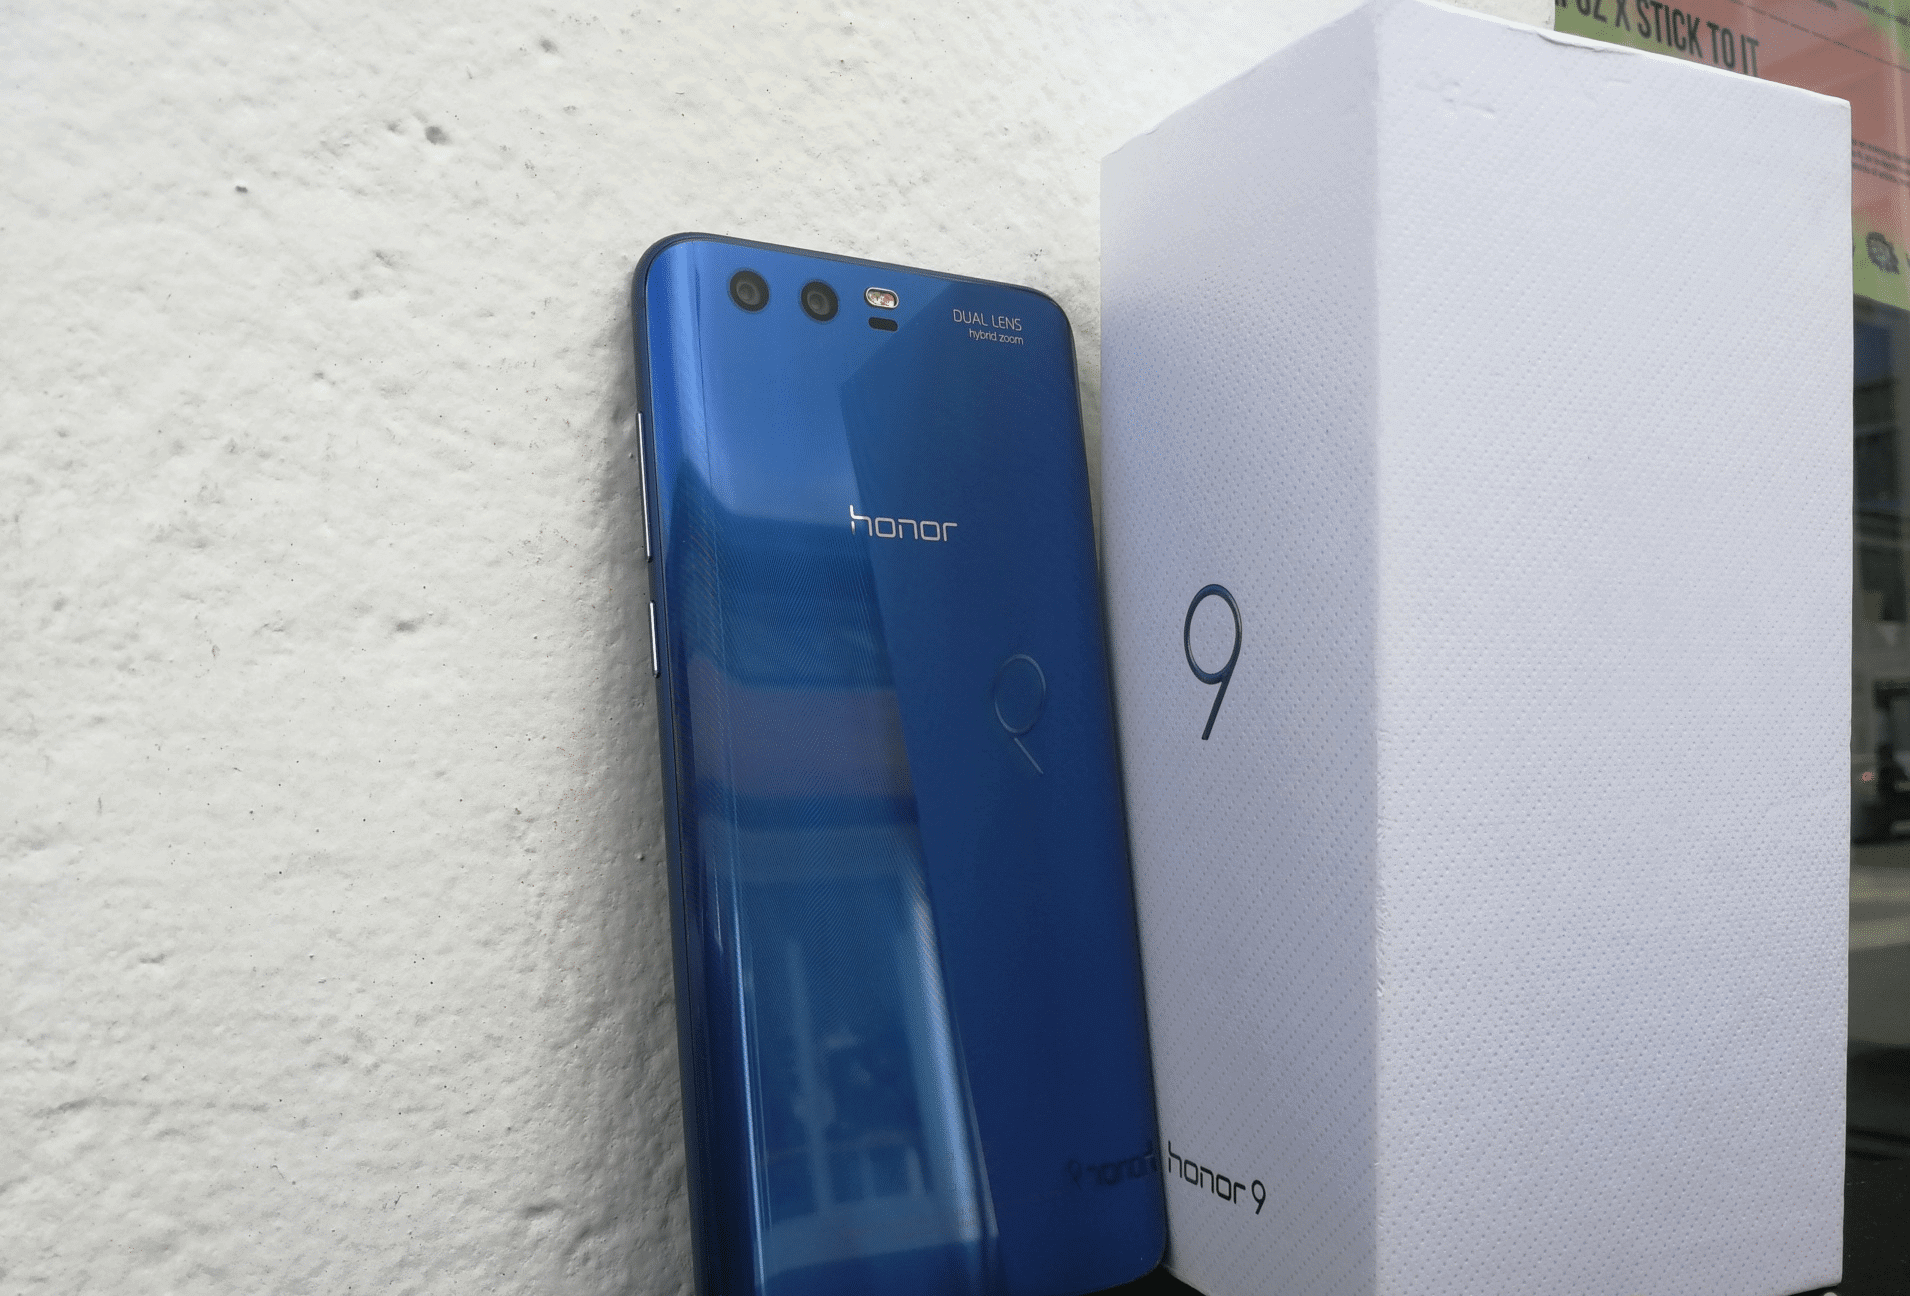 Huwei Honor 9 updated Android 7.0 Nougat official update